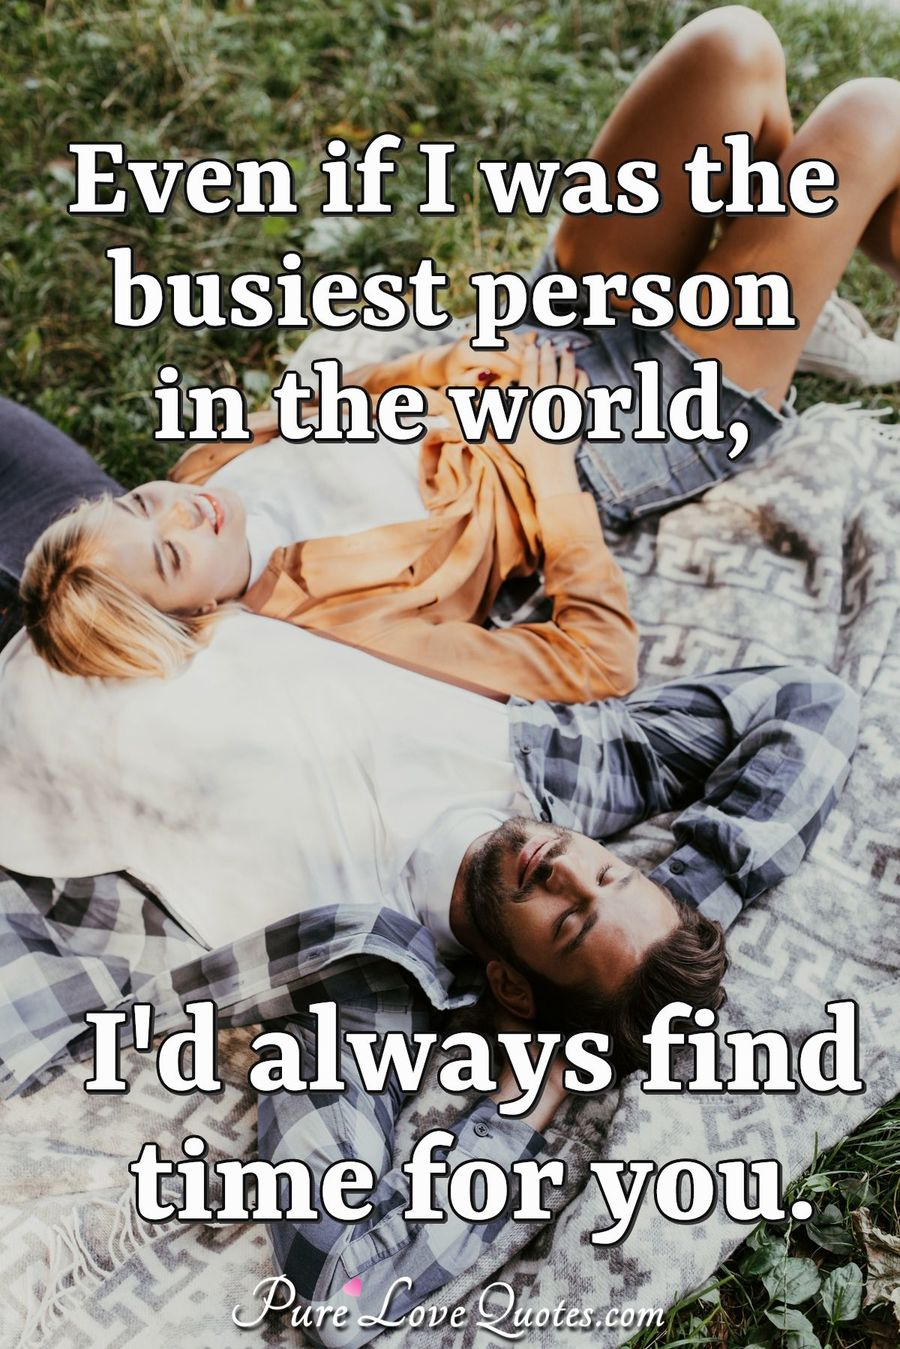 Even if I was the busiest person in the world, I'd always find time for you. - Anonymous